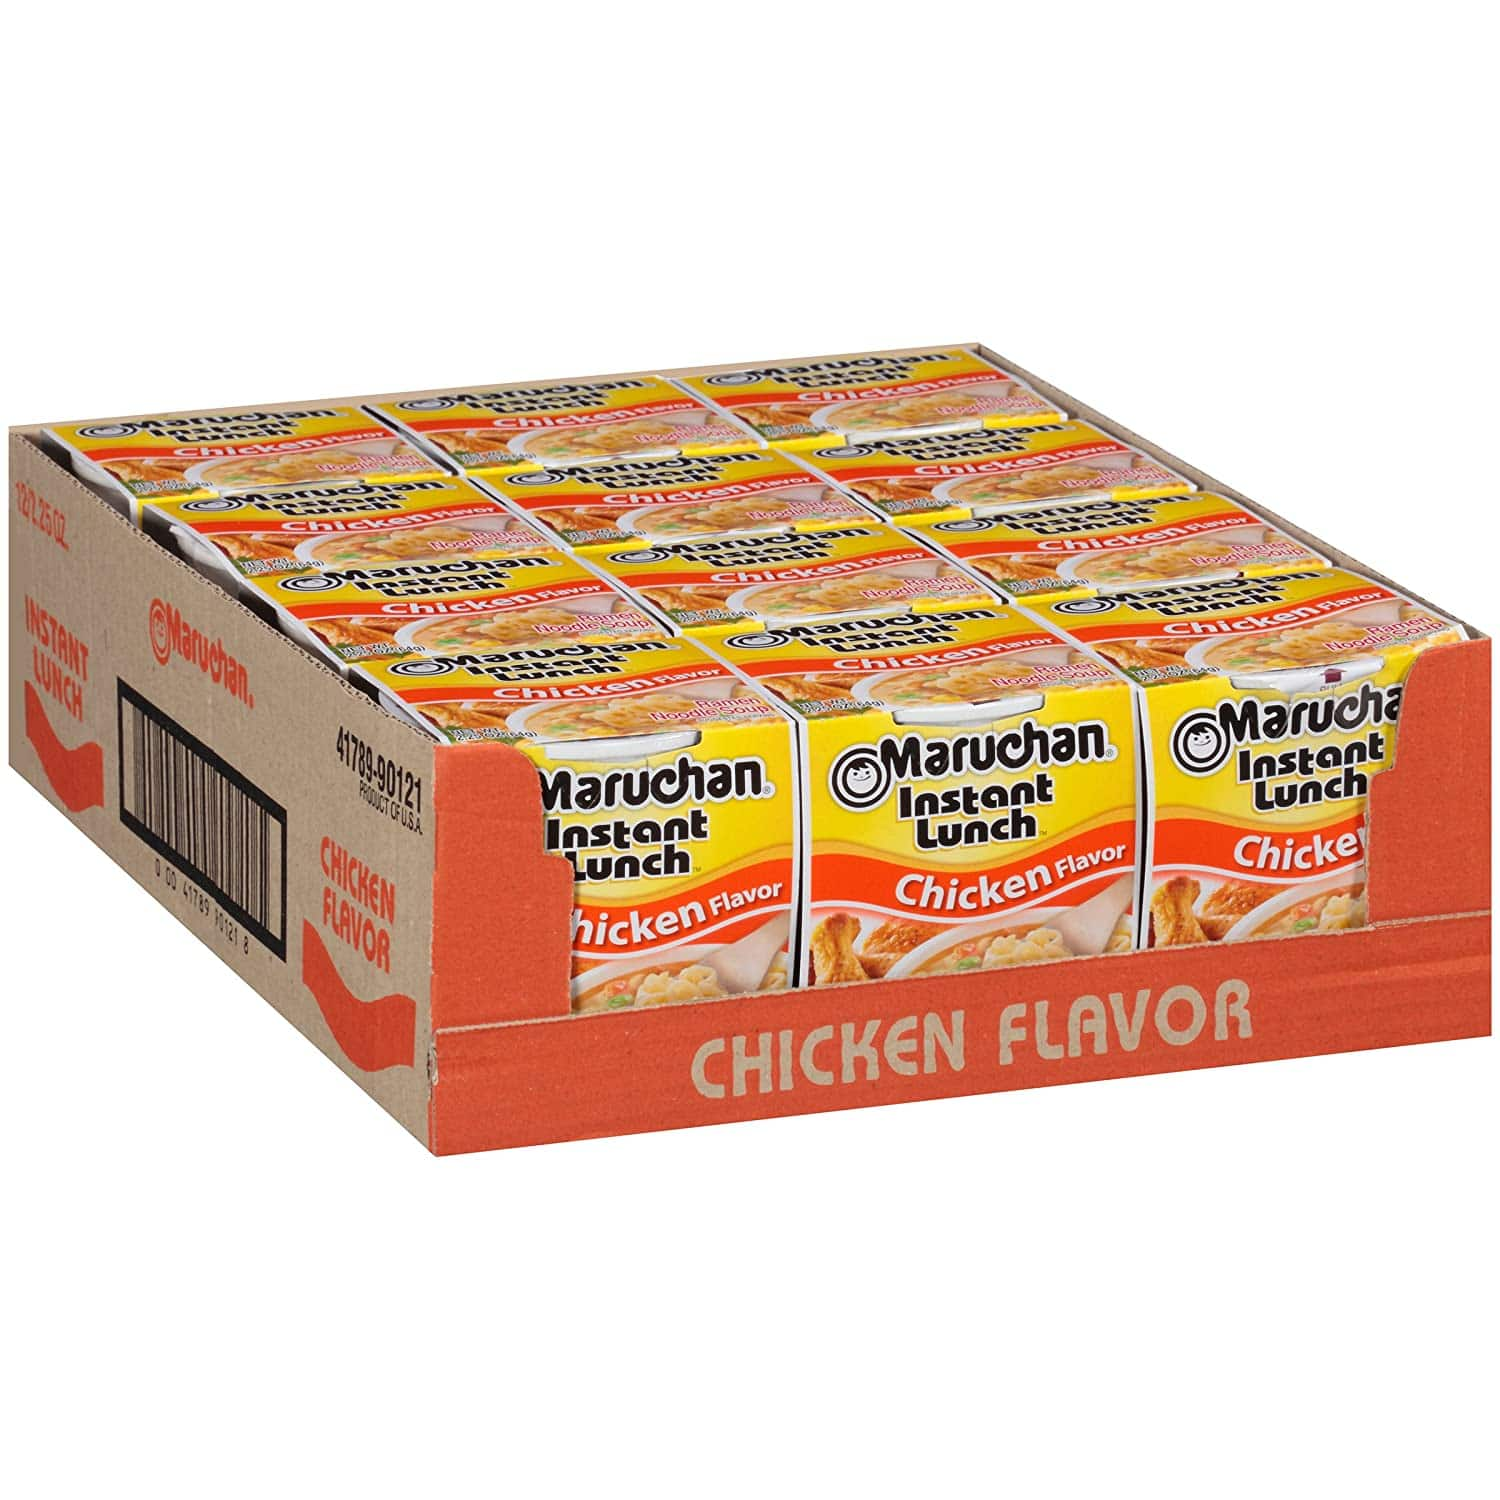 Maruchan Instant Lunch Chicken Flavor Noodles, 2.25 Oz, Pack of 12 $4.08